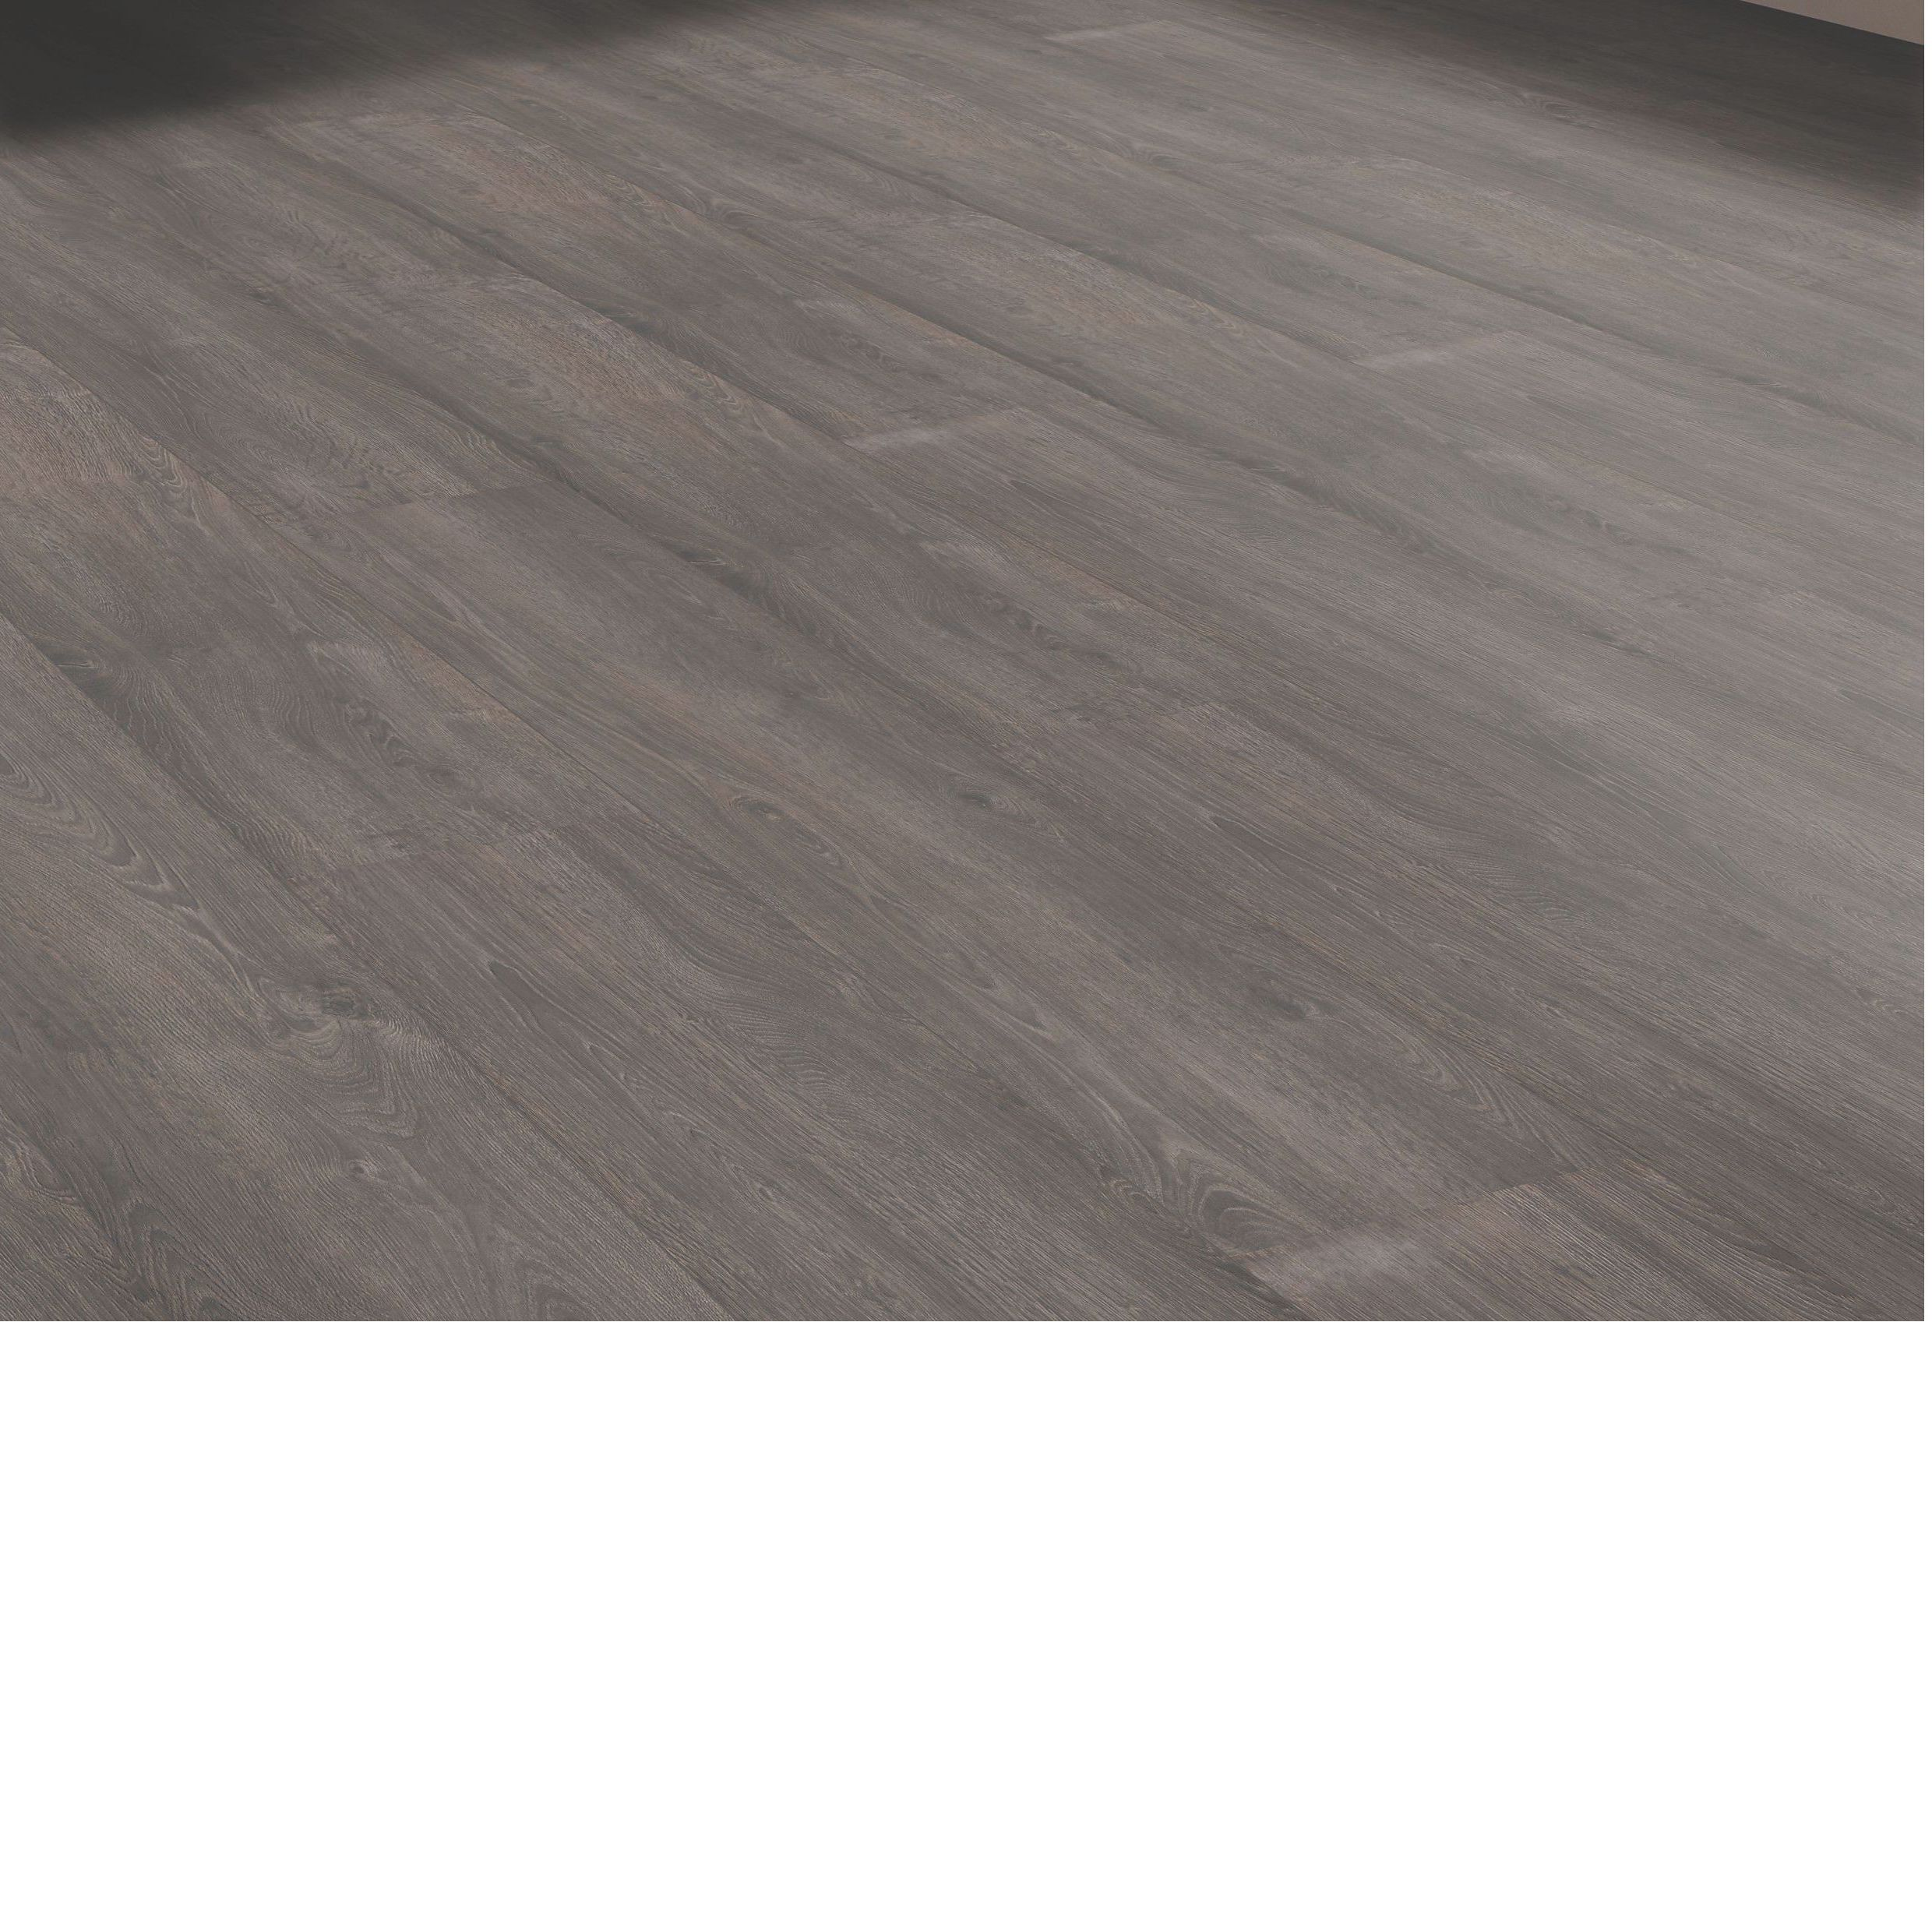 Kitchen Floor Tiles Bq Princeps Santander Oak Effect Wide Plank Laminate Flooring 145 Ma2